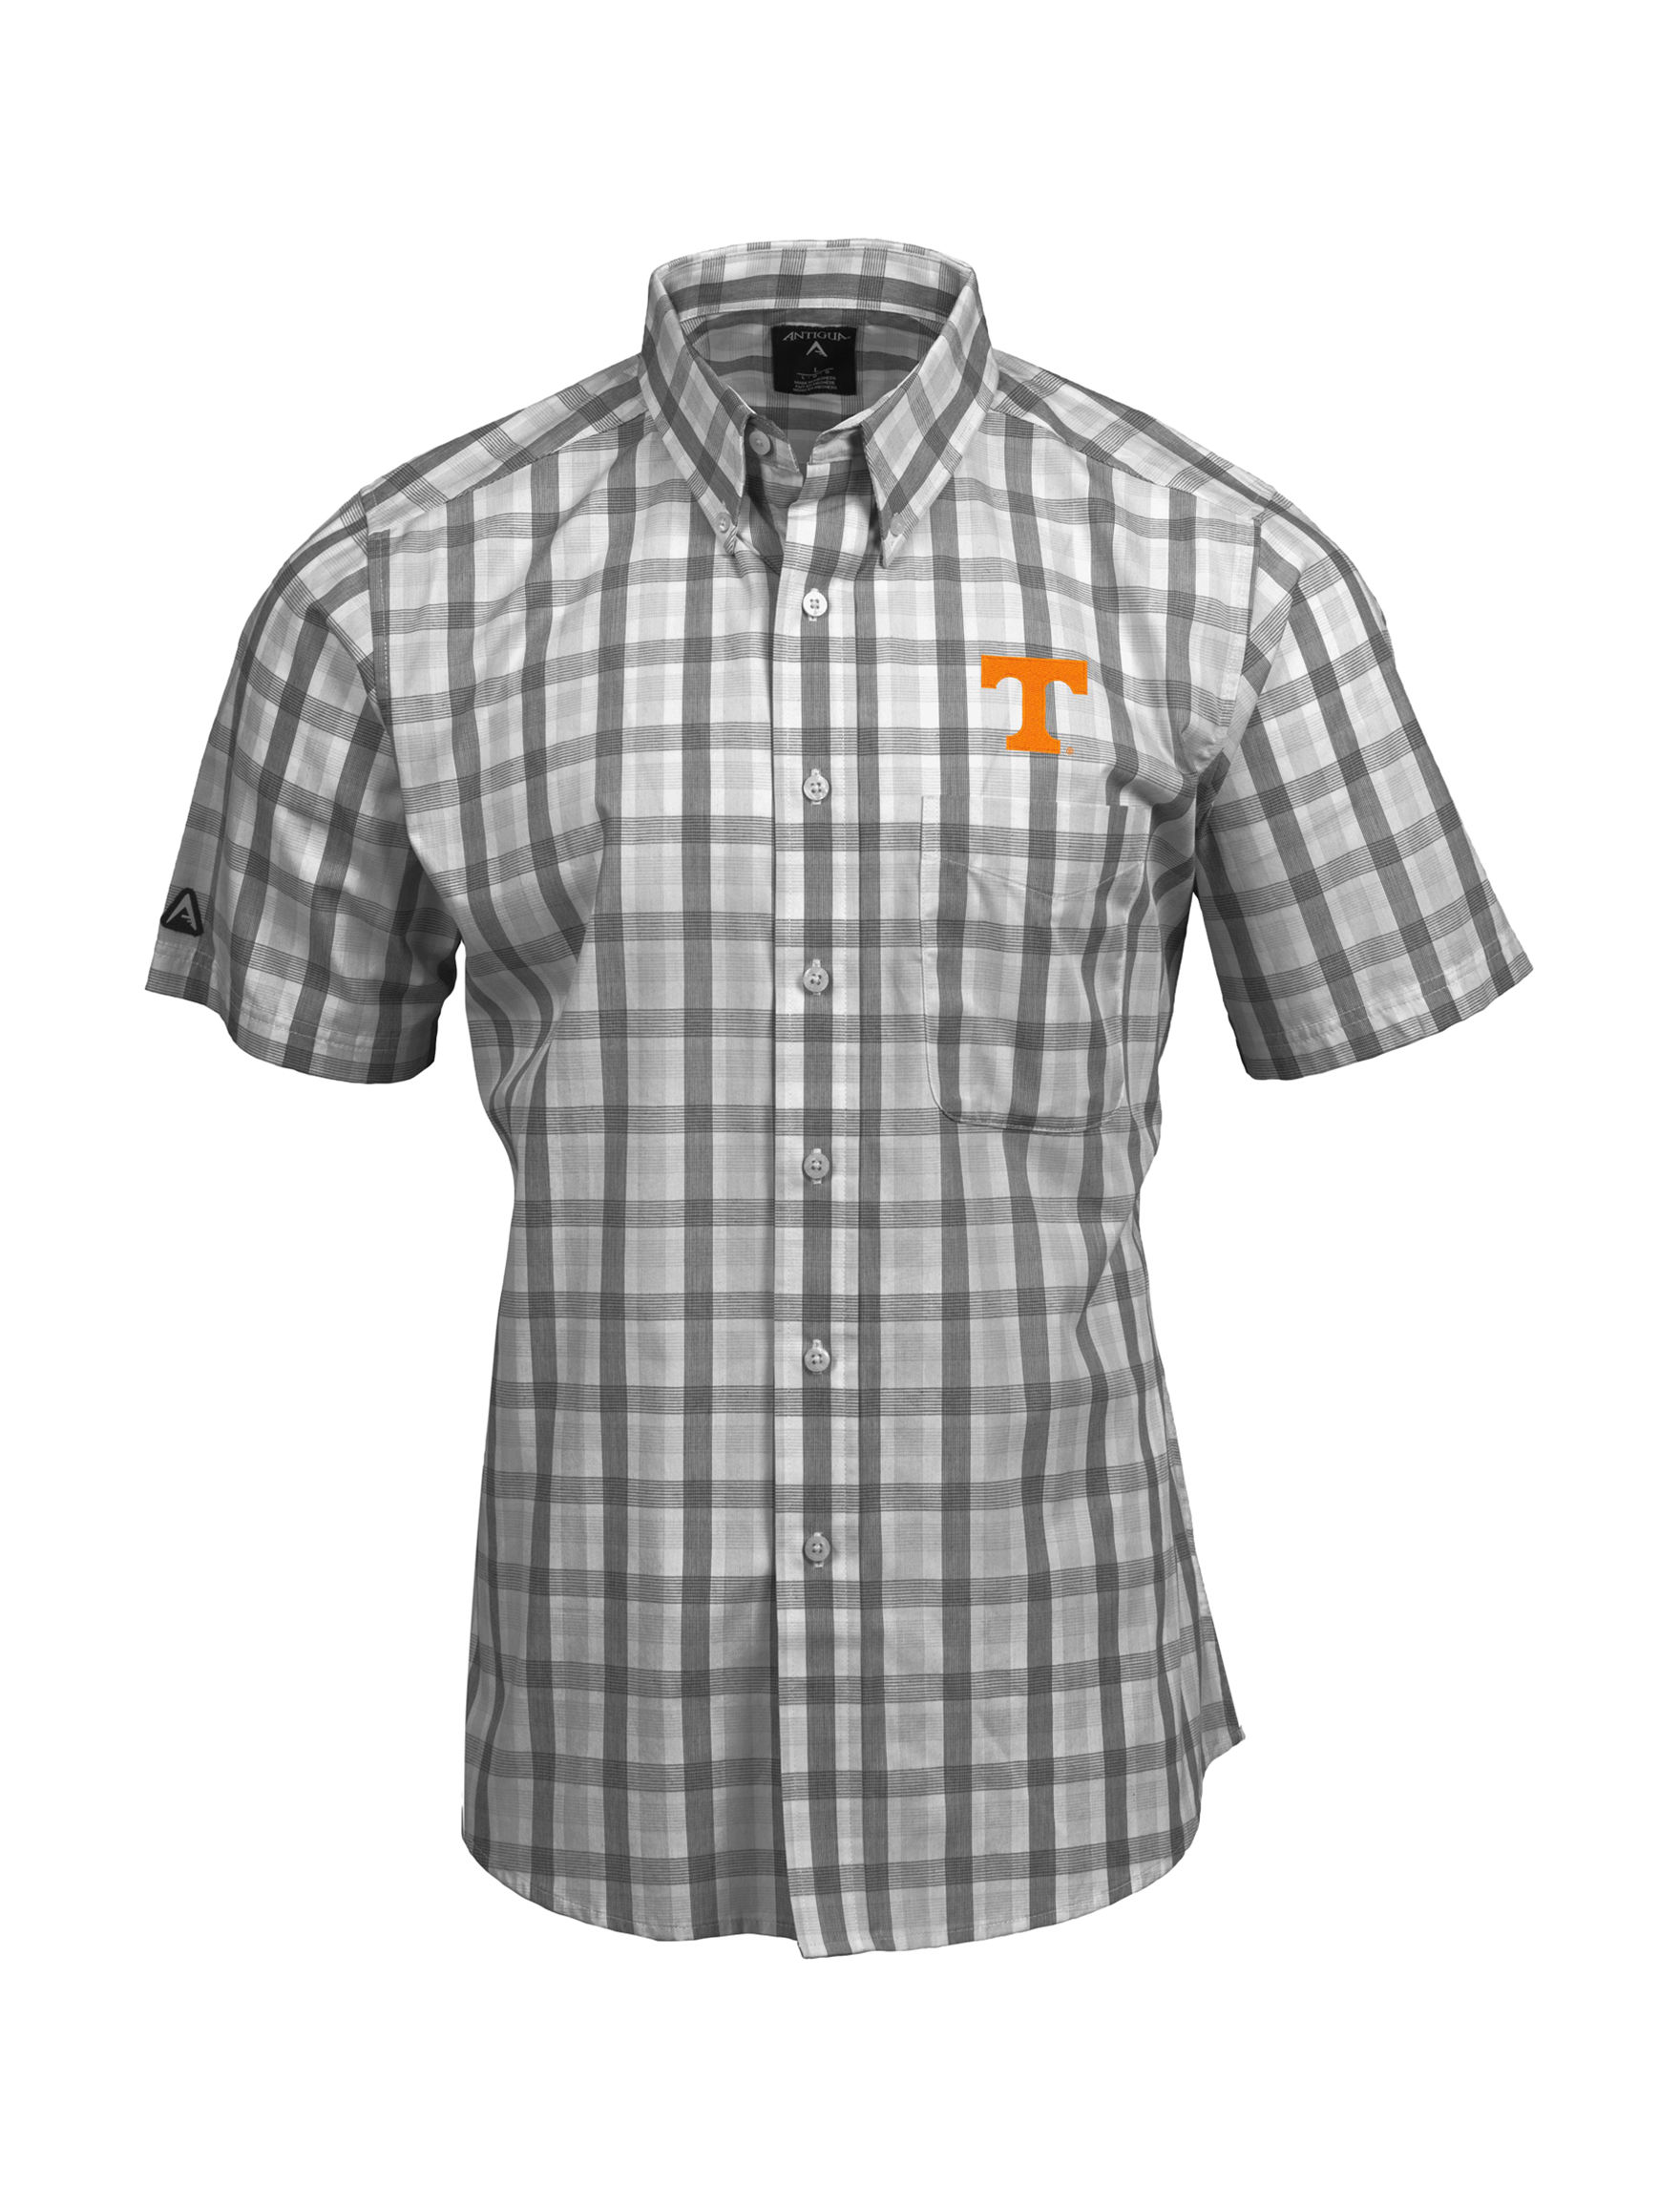 NCAA Grey Plaid Casual Button Down Shirts